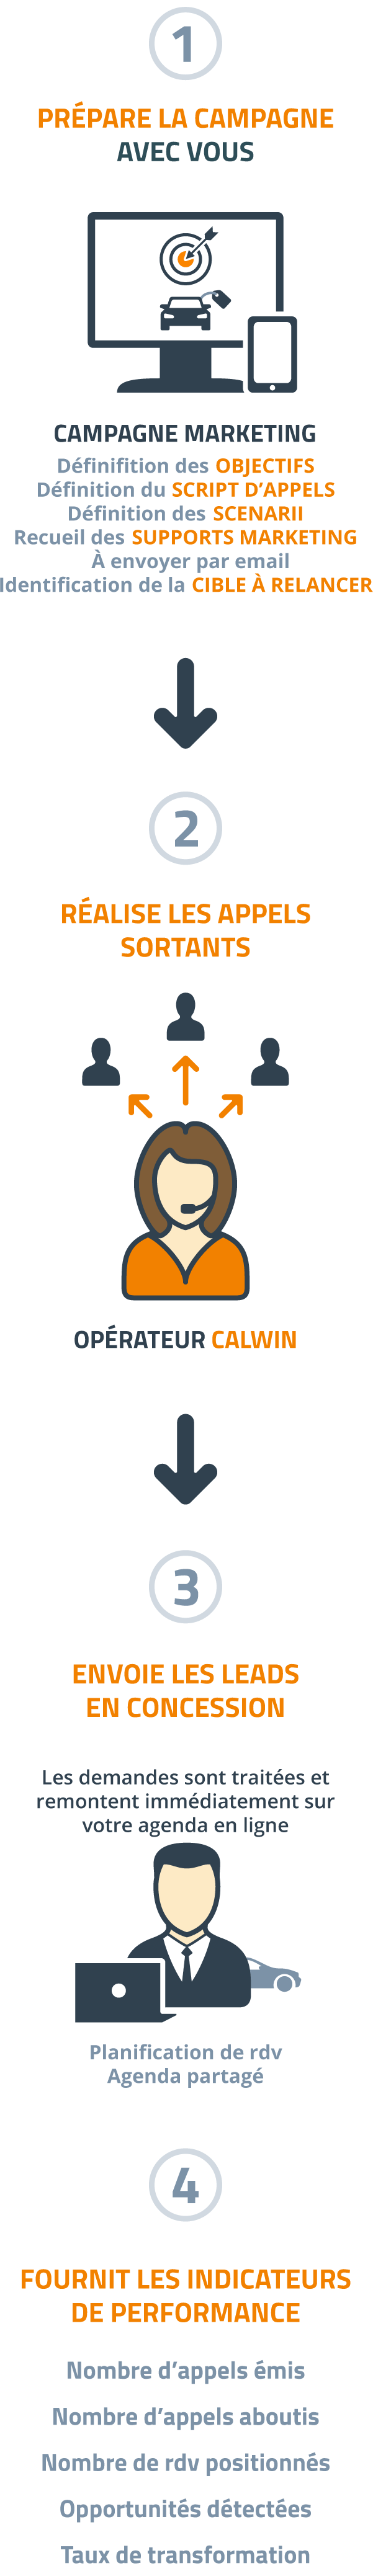 CallWin - appels sortants